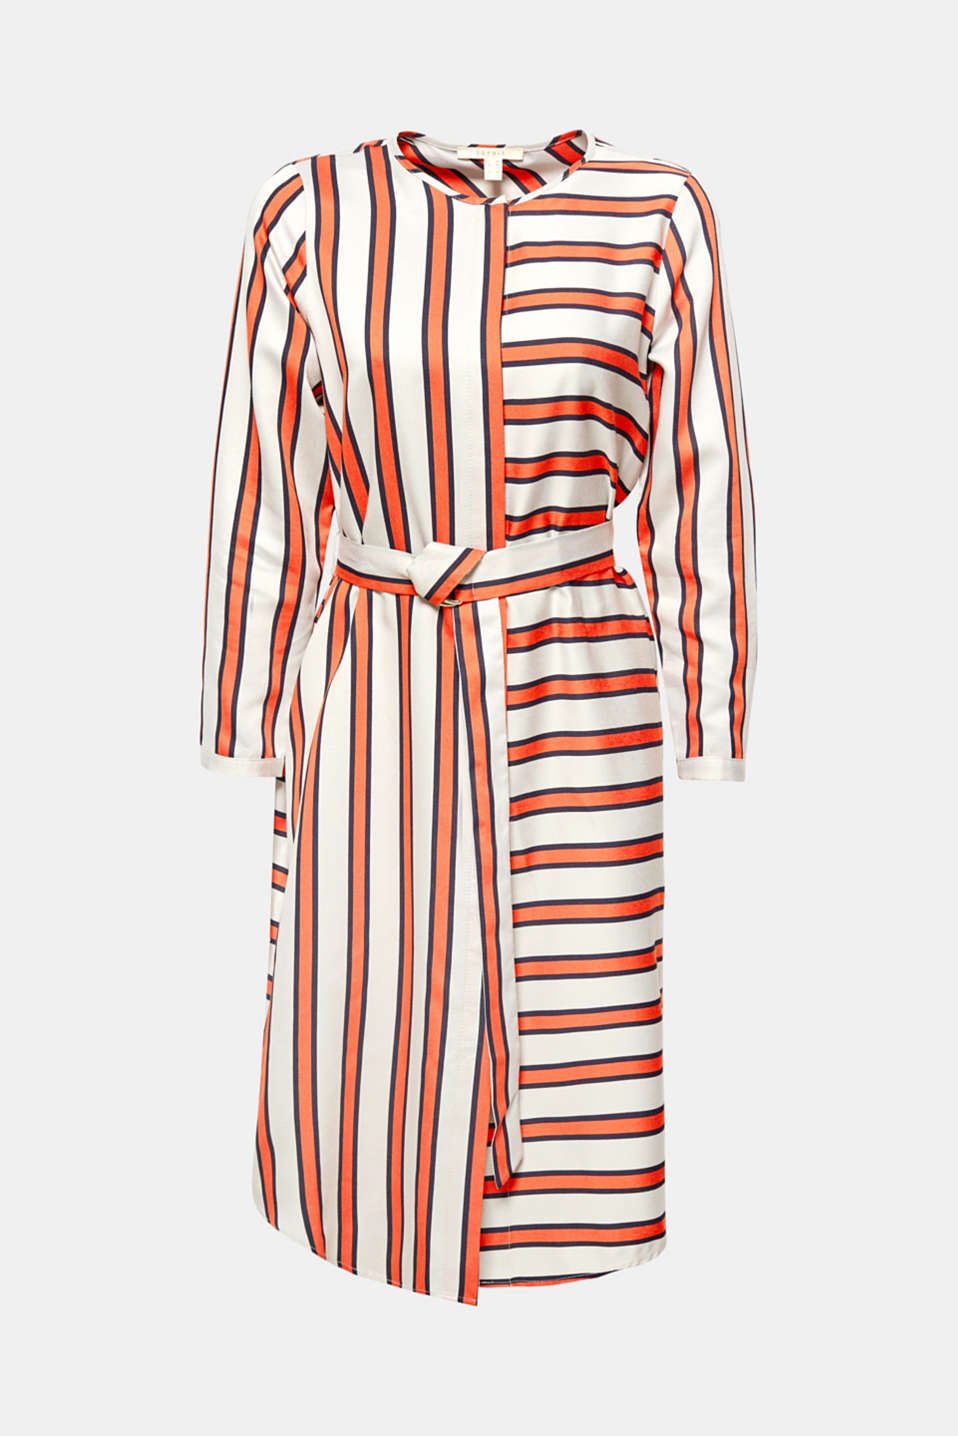 This knee-length dress boasts a new fashion look and stands out with its graphic sophistication, with stripes running in different directions.